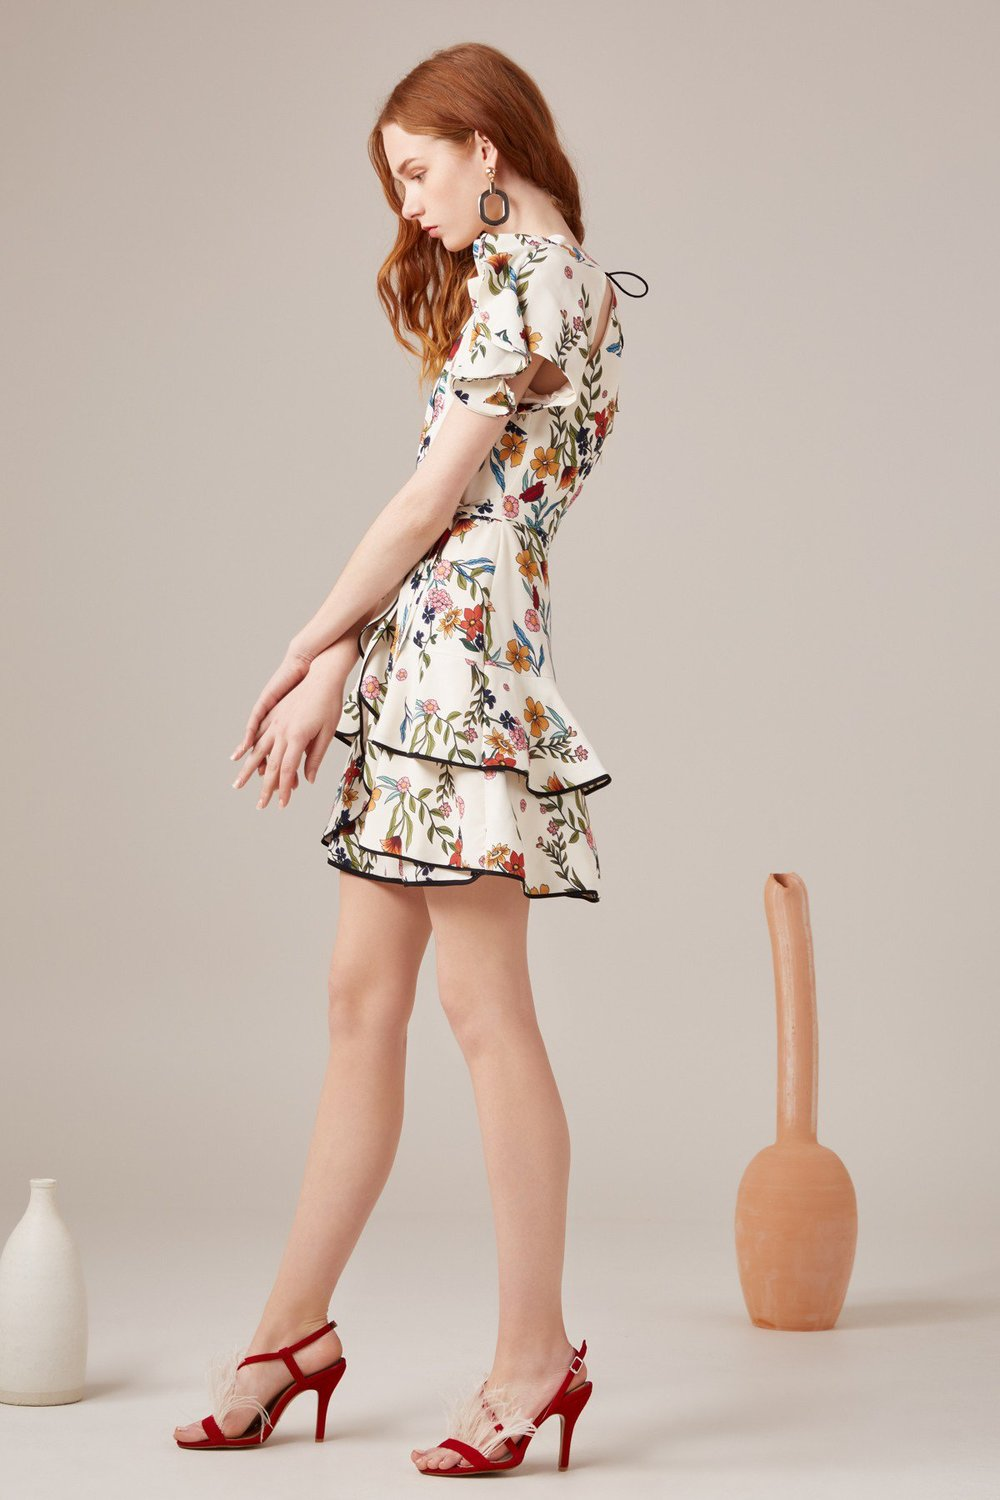 Shop C/MEO Entitle Mini Dress.